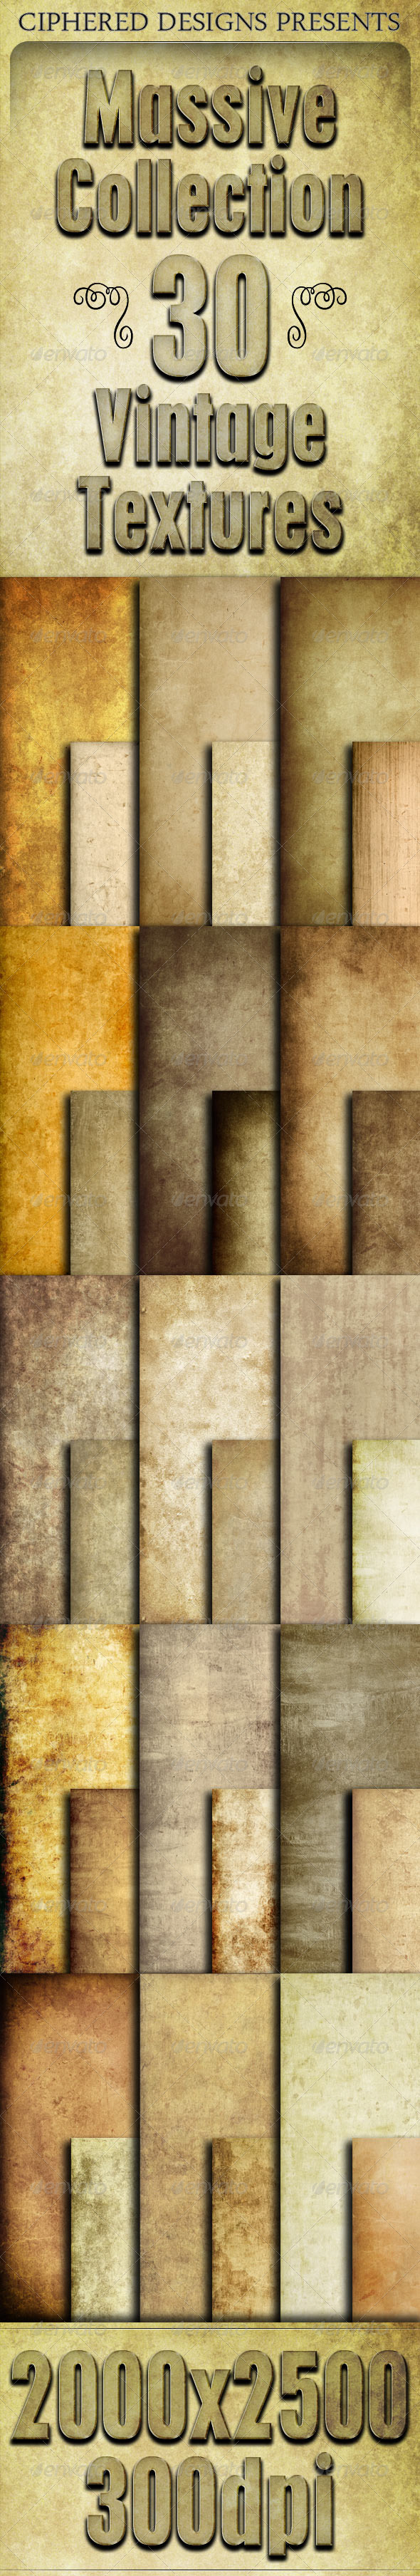 GraphicRiver Massive Collection 30 Vintage Textures 4277334